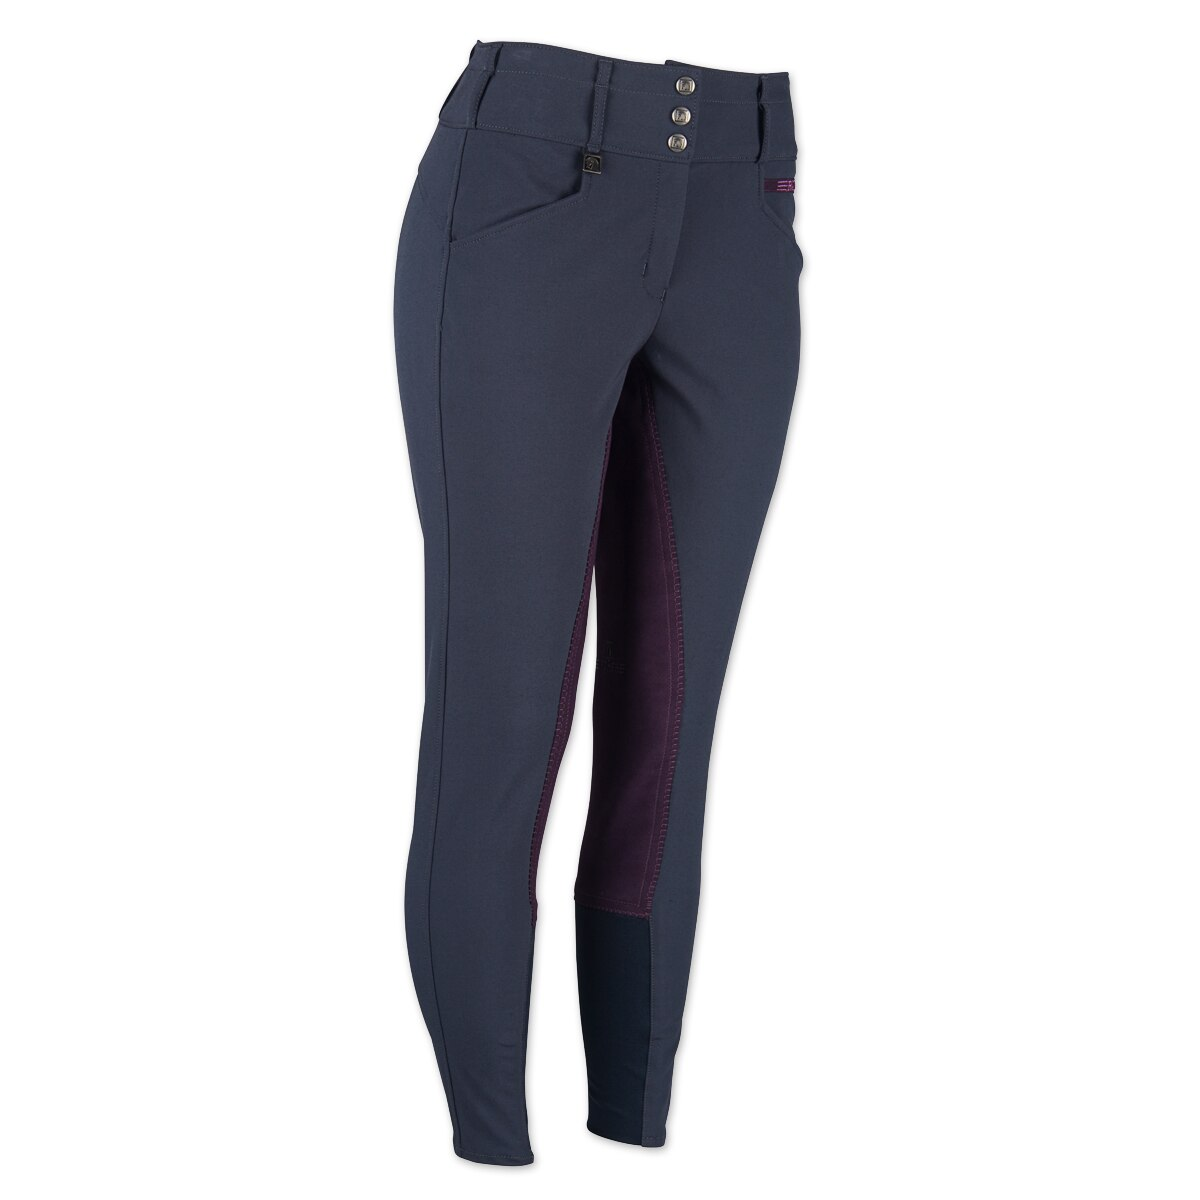 Romfh Ladies Champion Dura-Dry 3-Button Full Seat Riding Breeches With Curve Fit